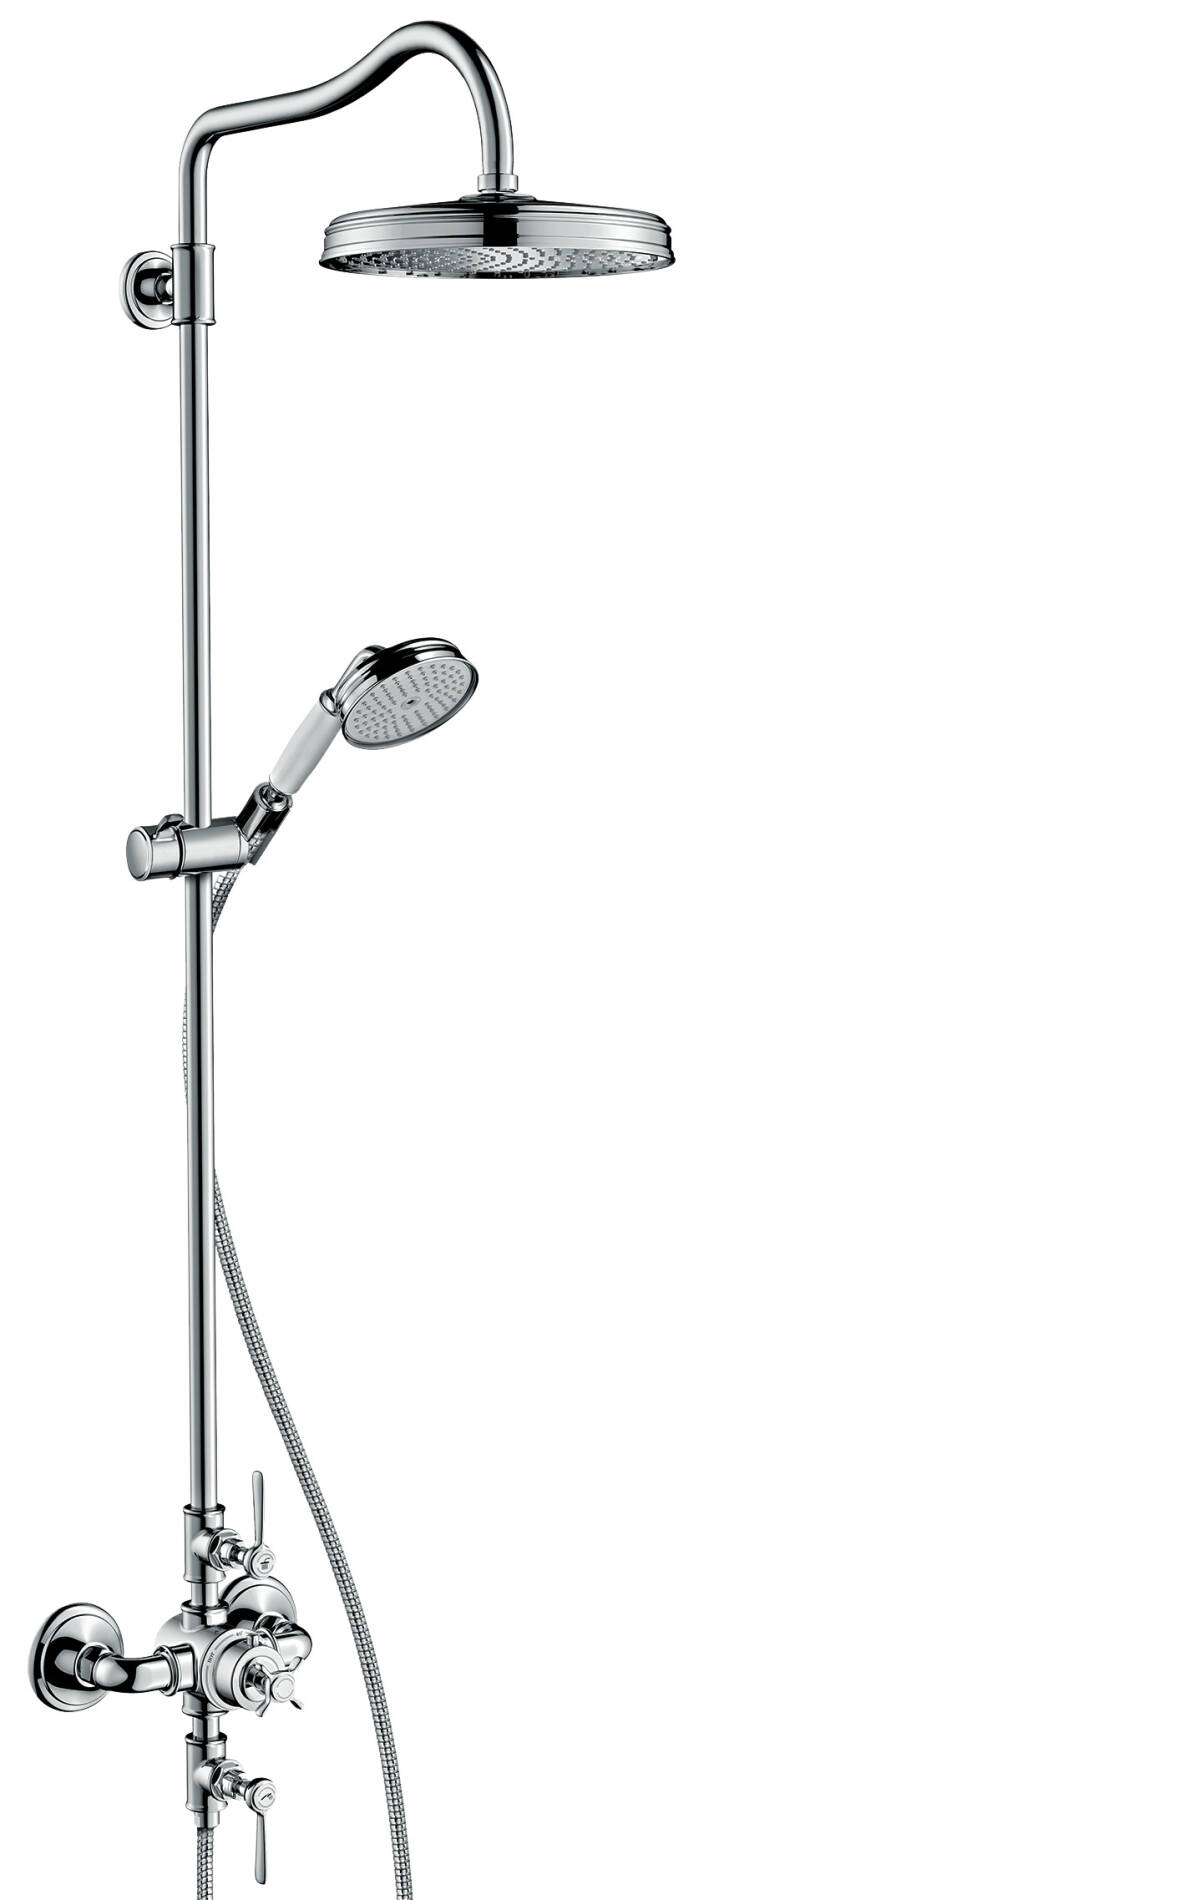 Showerpipe with thermostat and overhead shower 240 1jet, Chrome, 16572000